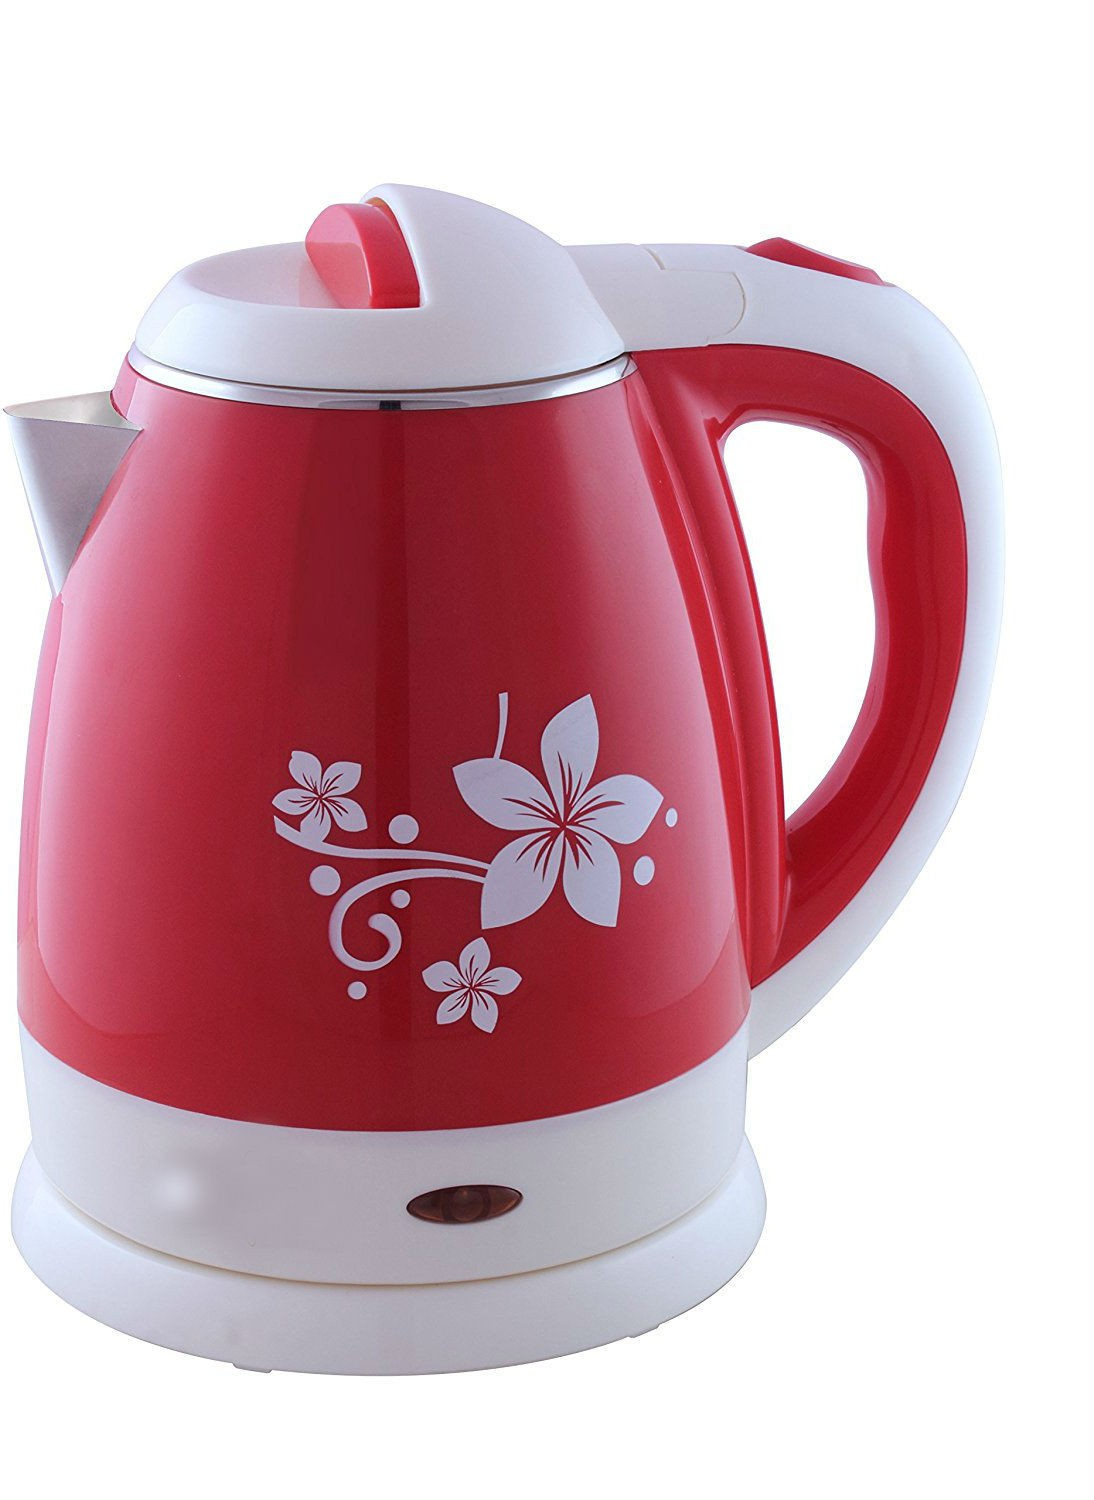 Shrih SH - 02642 Portable Cool Touch Electric Kettle(1.2 L, White Red)